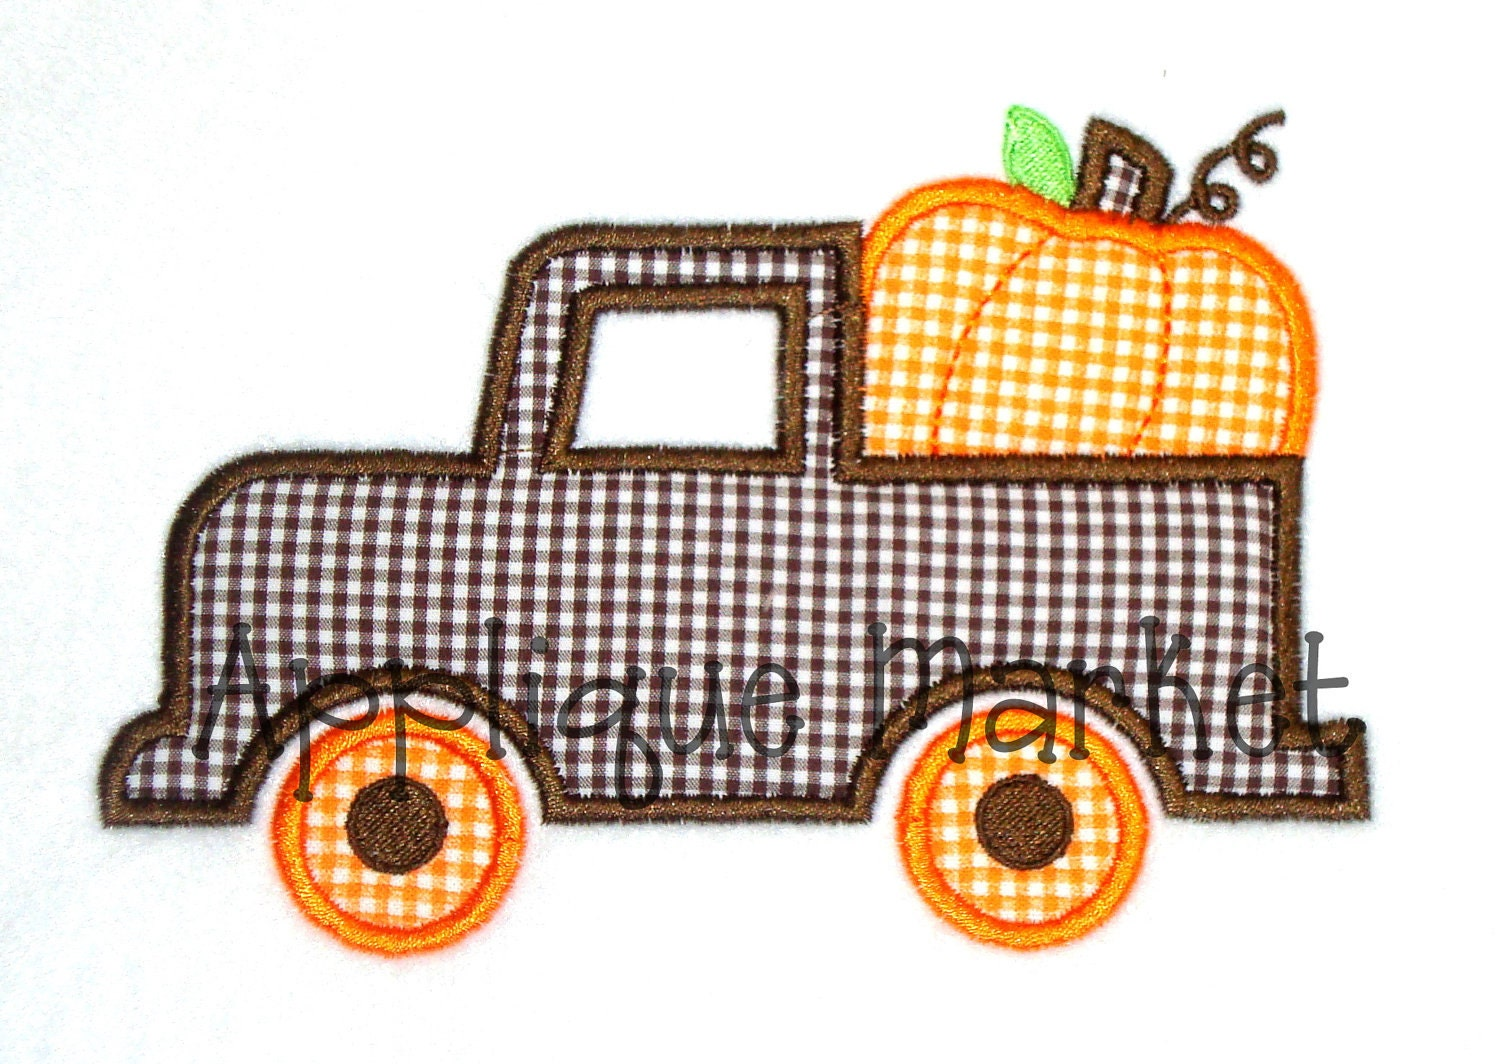 Machine embroidery design applique truck with by tmmdesigns